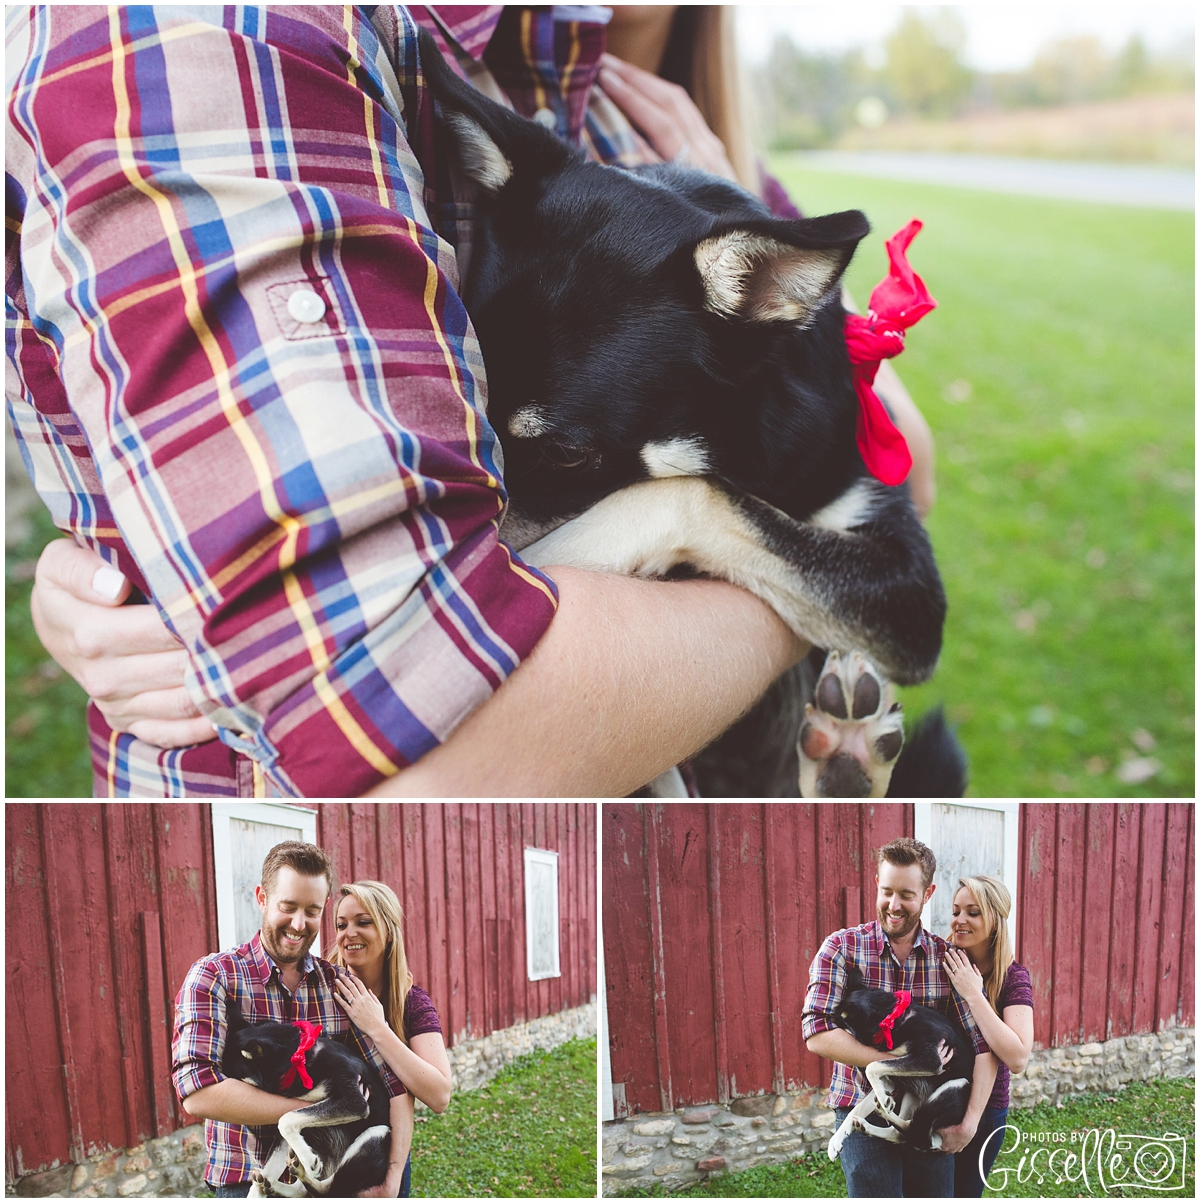 StCharles_Engagement_Photography_Leroy_oakes_0017.jpg